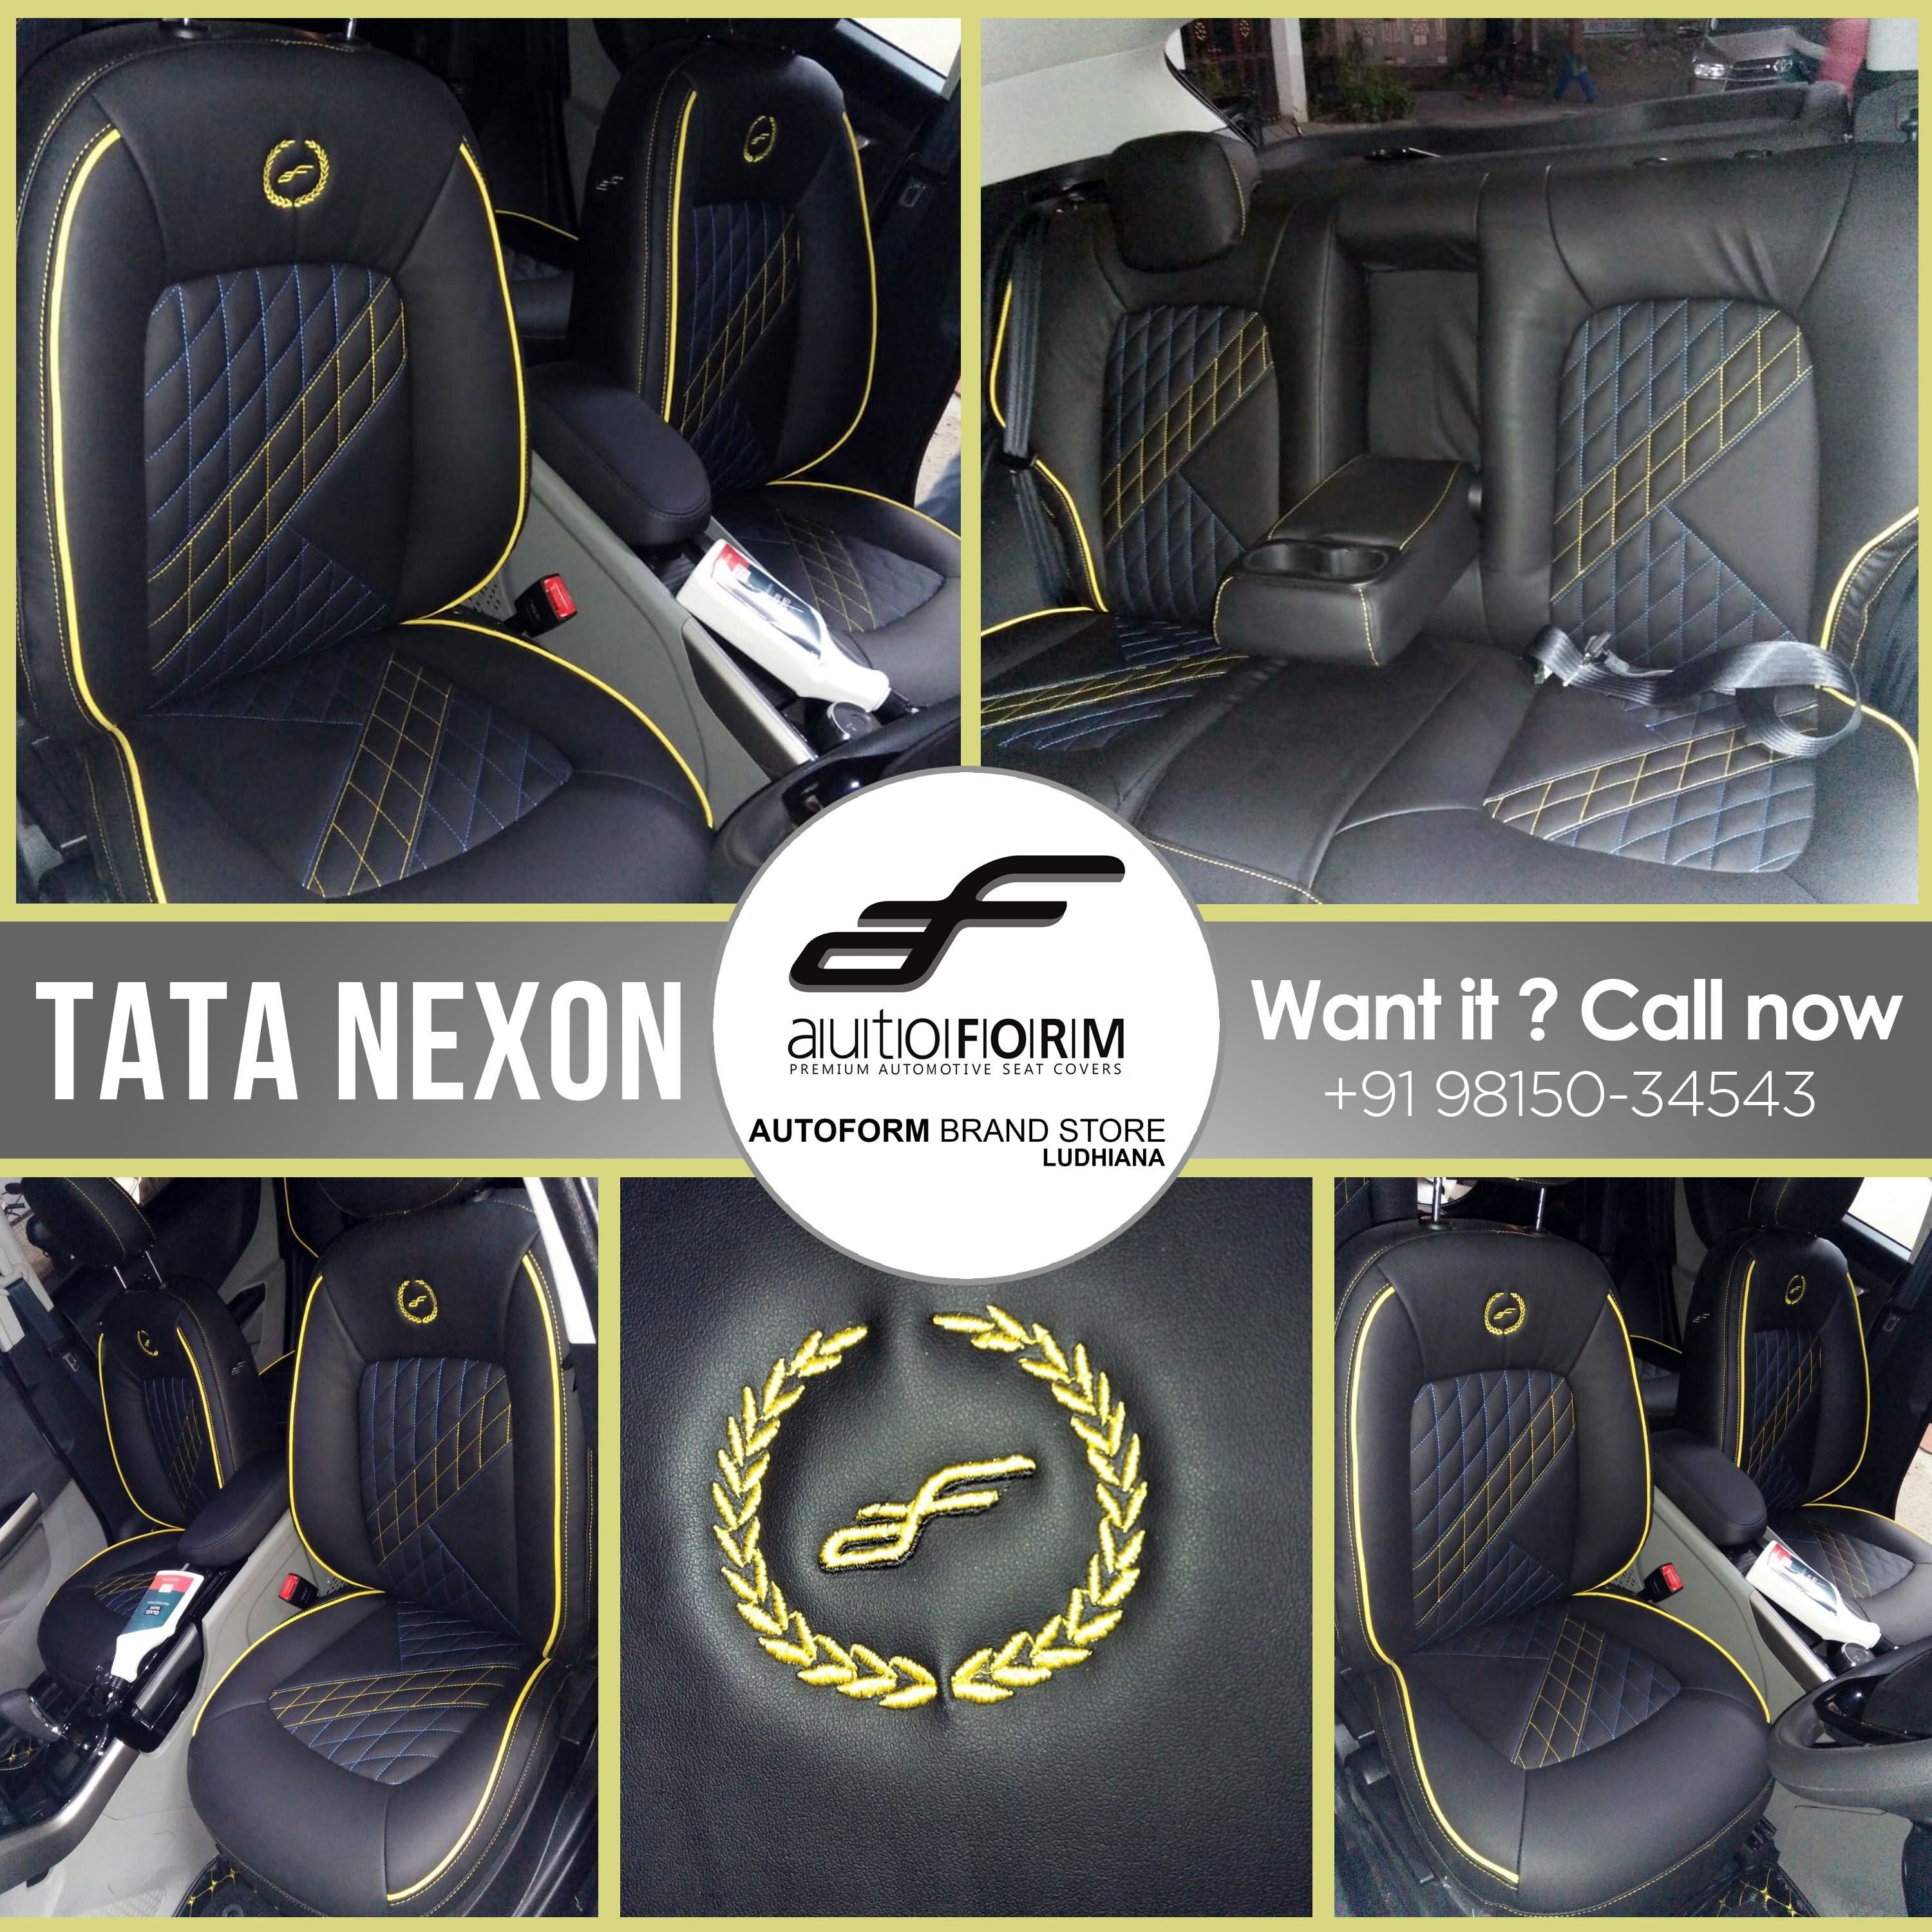 Branded Car Seat Covers In Ludhiana Black Chair Covers Car Seat